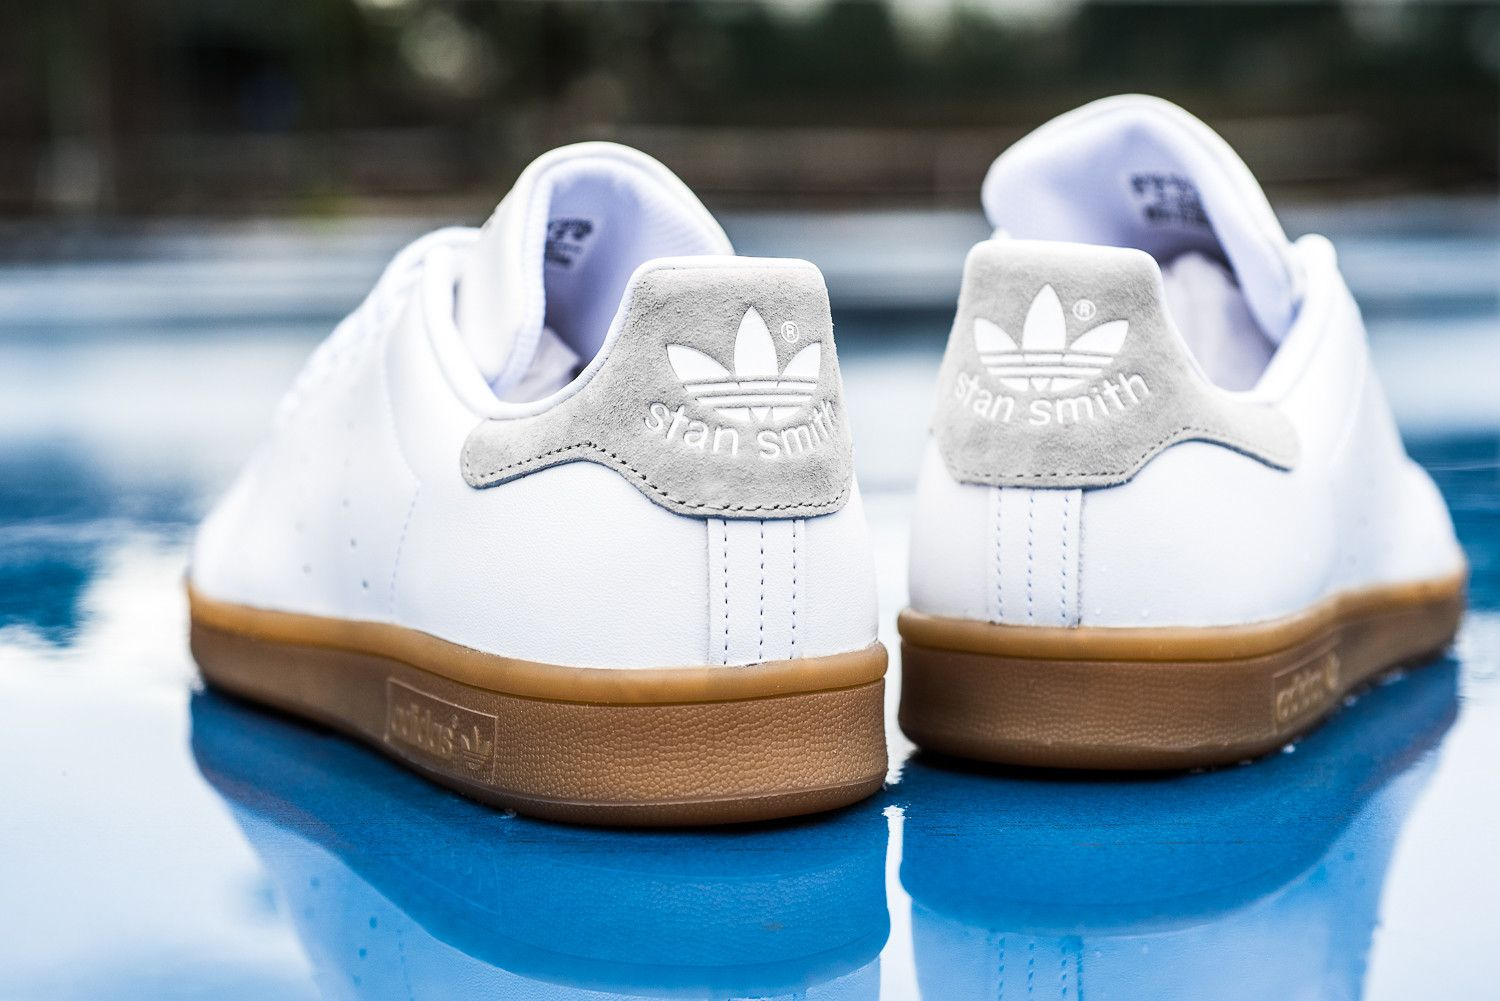 Dressing Chaussures Adidas Originals Stan Smith White Gum Sneaks And Socks